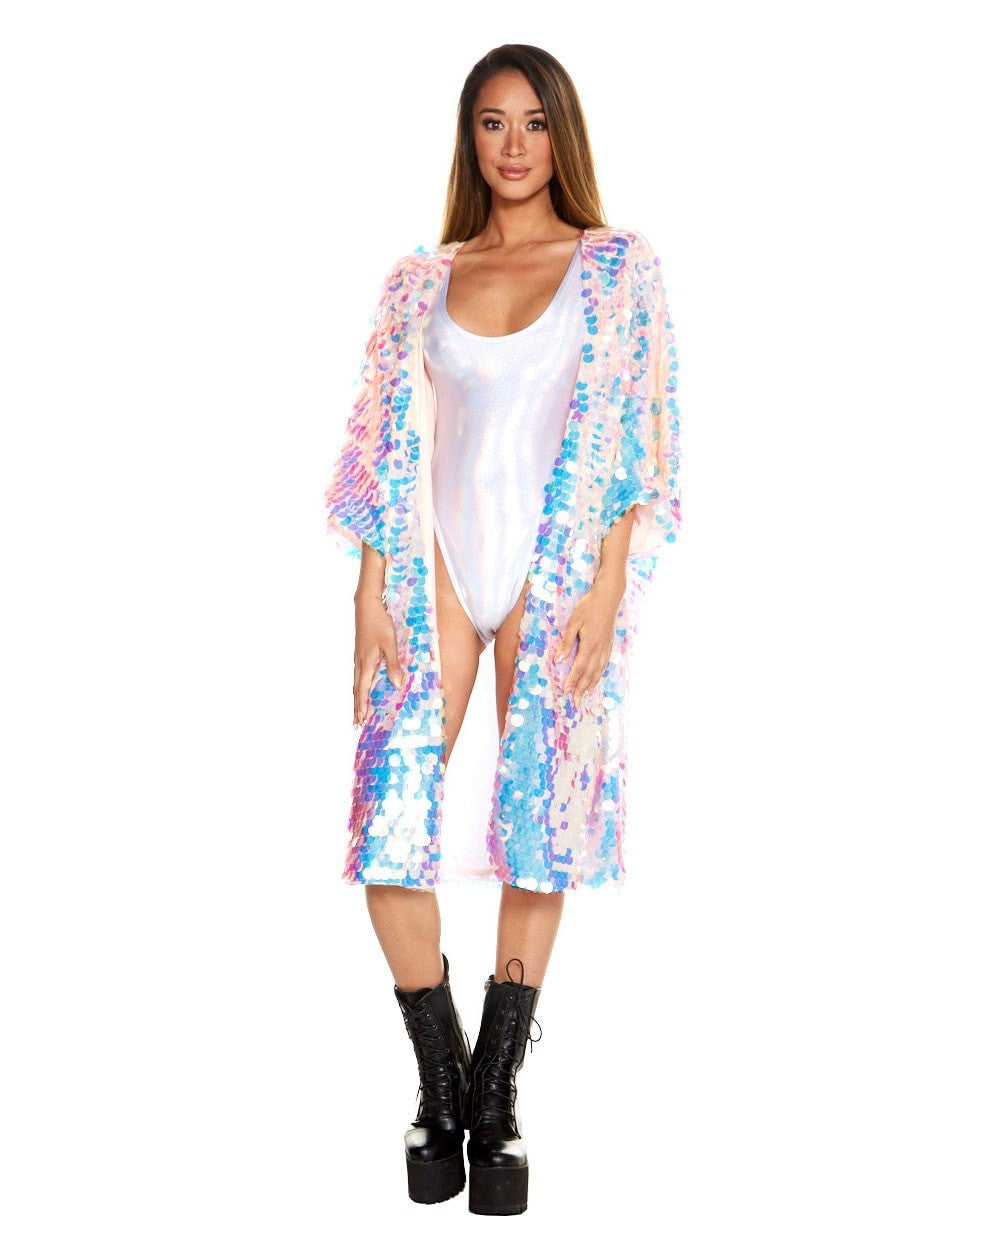 b6f497235 Party Monster Sequin Kimono Cover Up - EDM Sauce